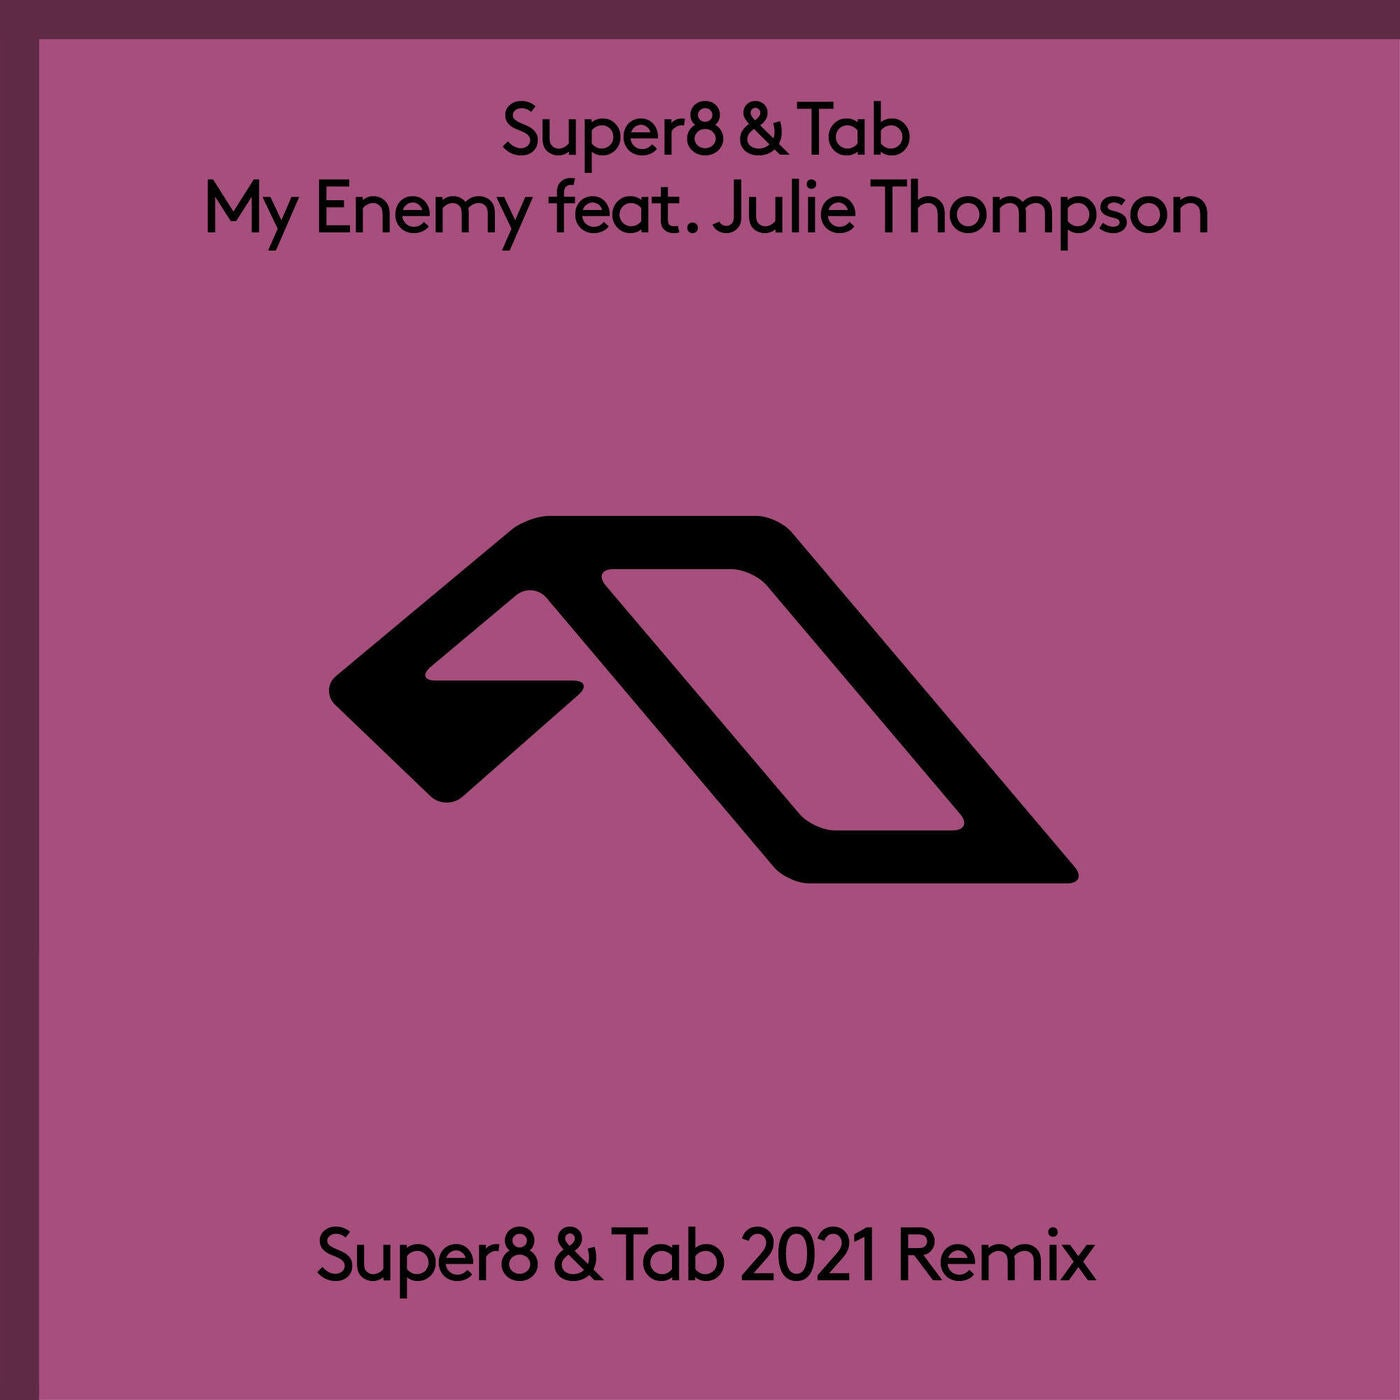 My Enemy feat. Julie Thompson (Super8 & Tab 2021 Extended Mix)